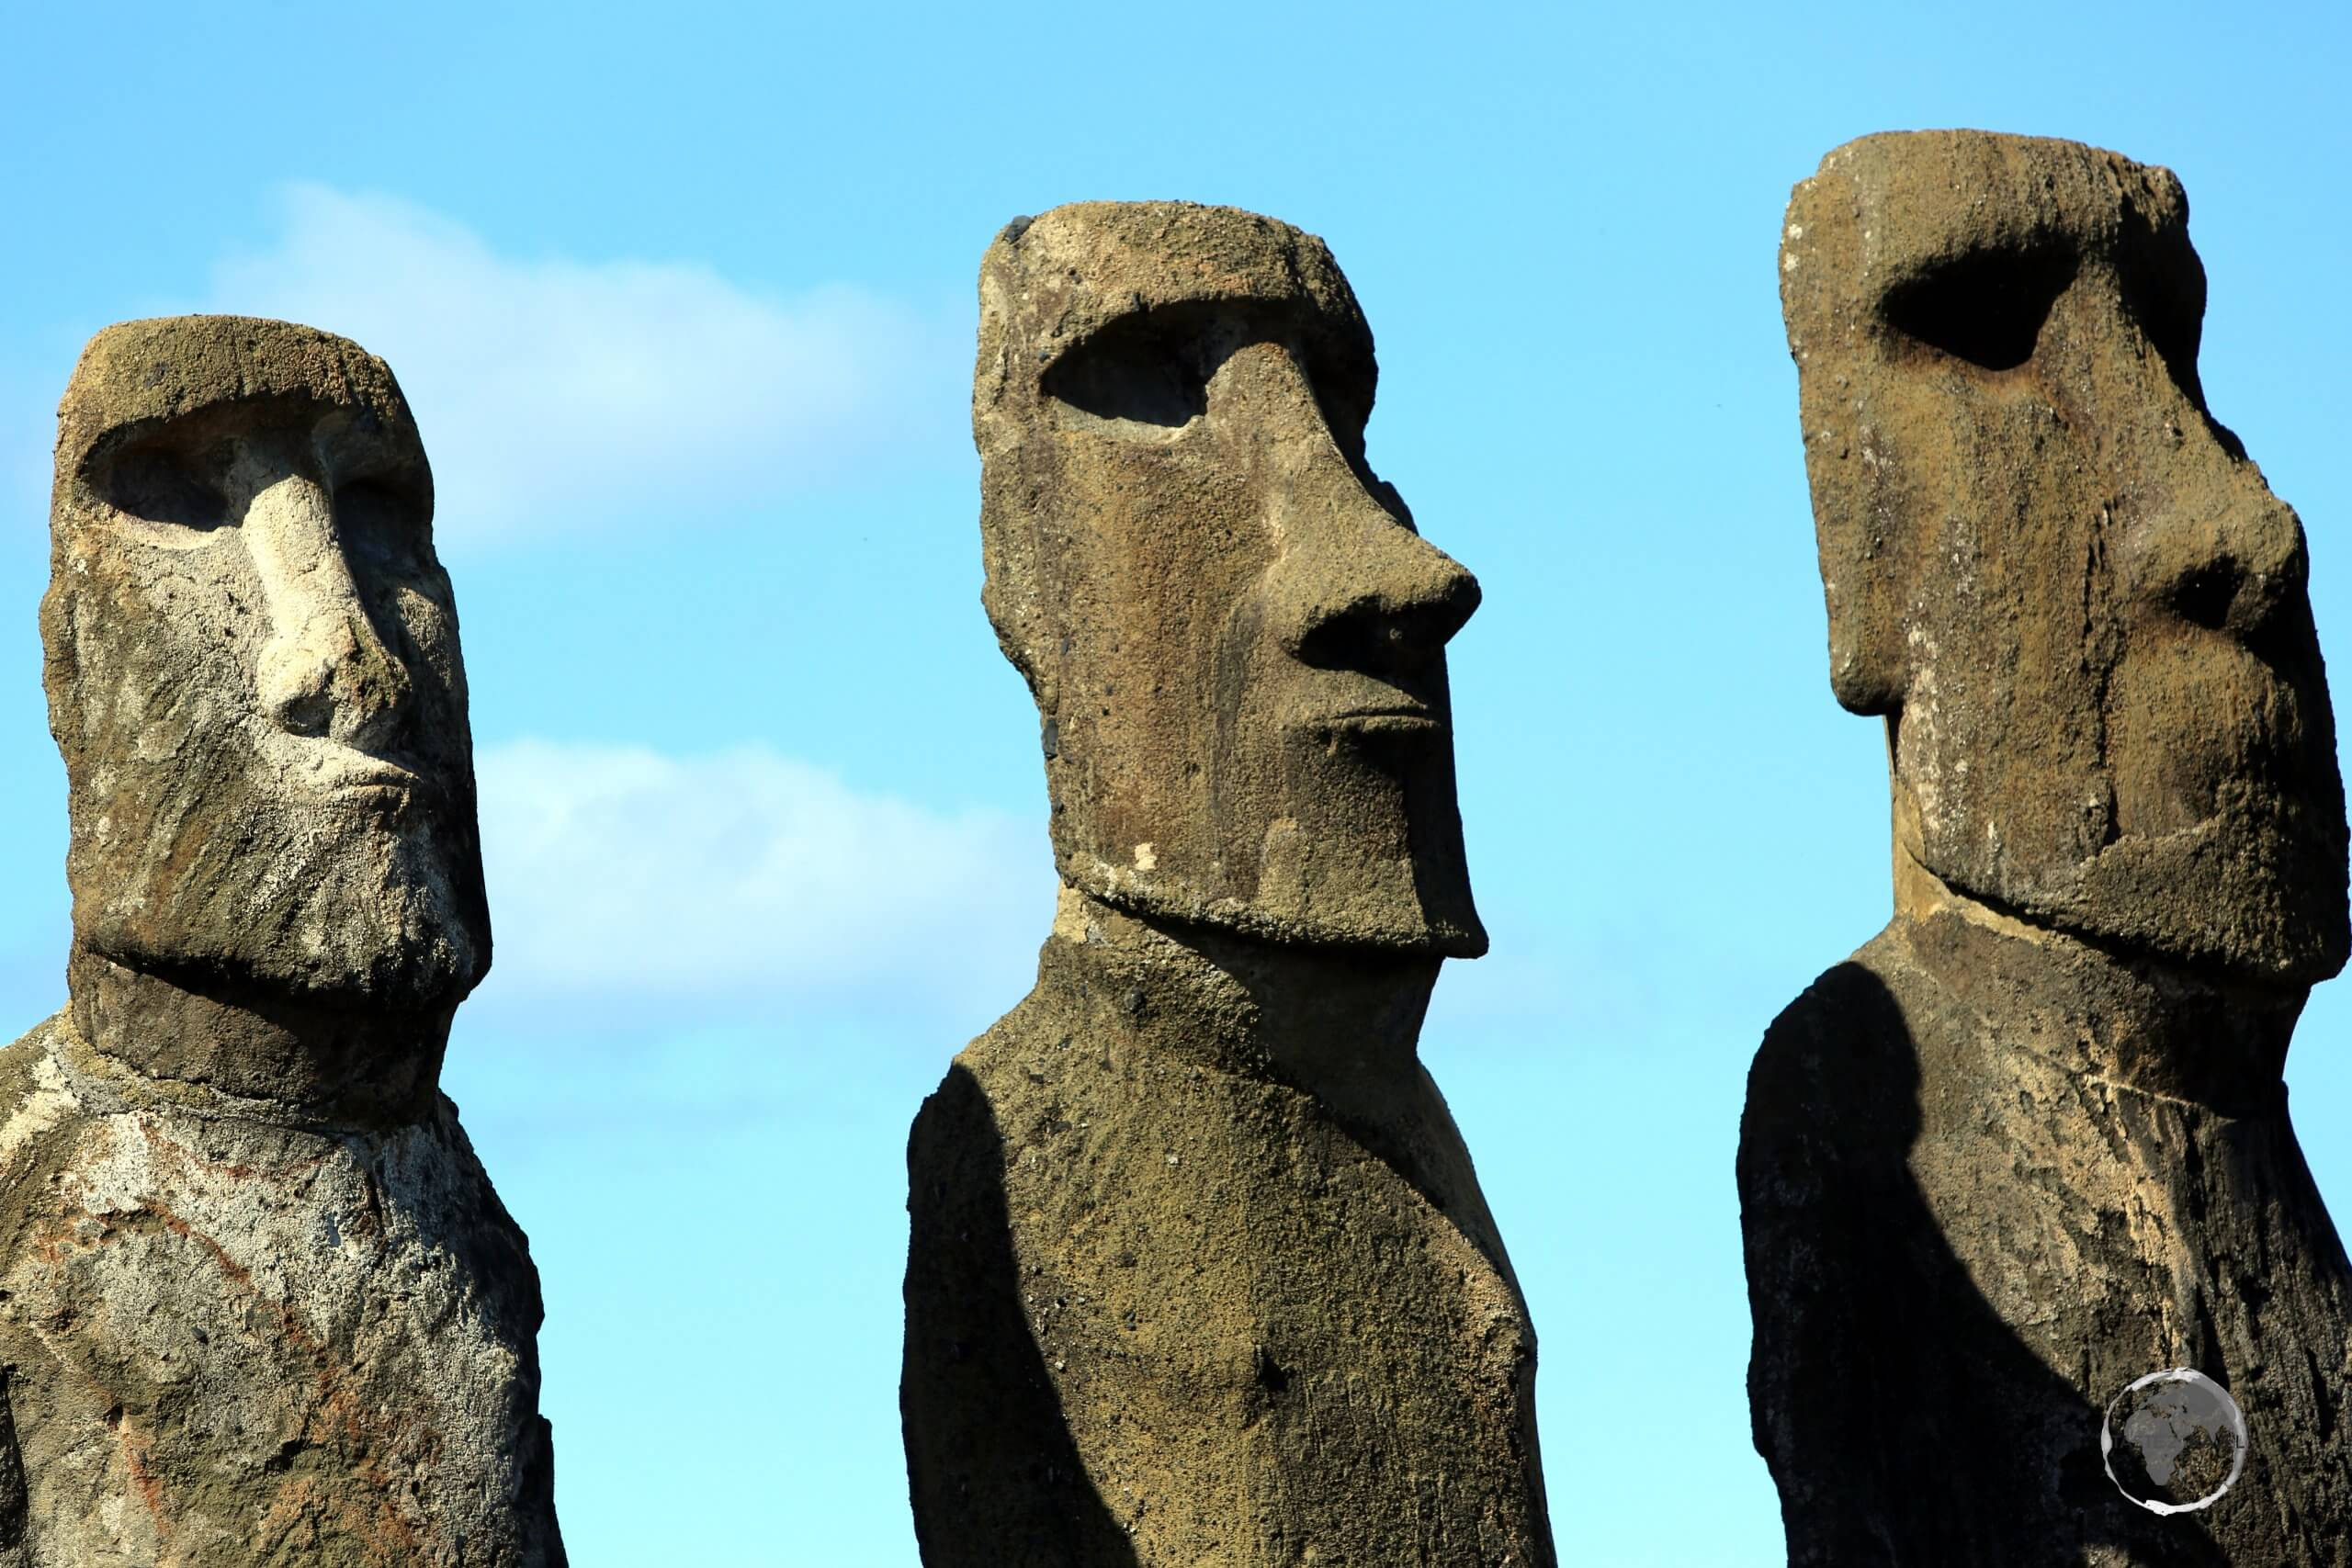 All moai were installed with empty eye sockets. Once their eyes were added, the statue was given 'life', and was then able to offer protection to the inhabitants of Easter Island.